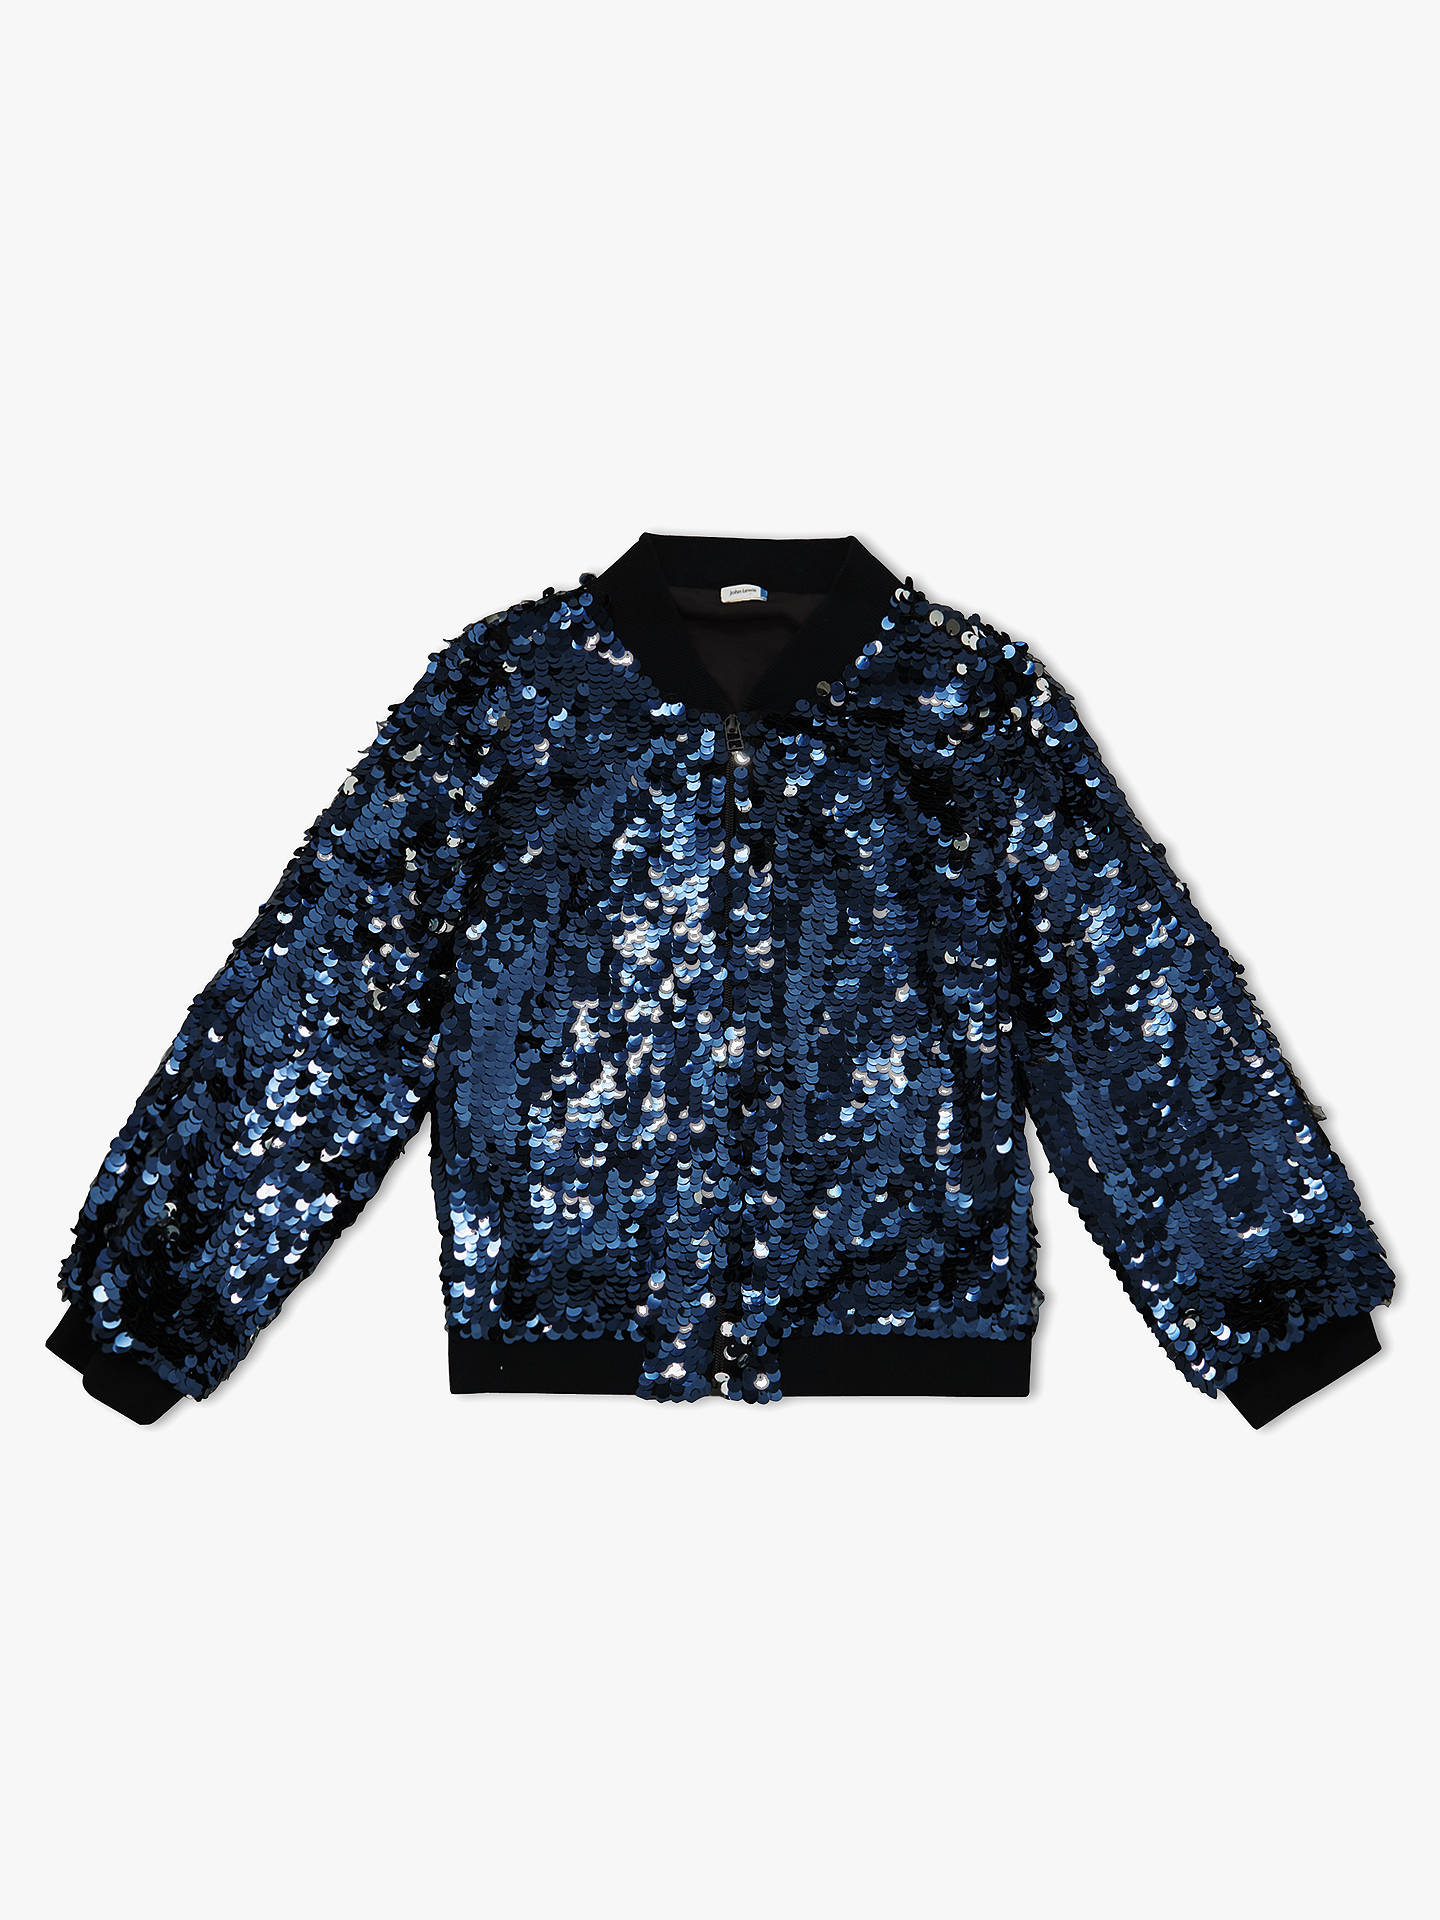 8e5988de5a John Lewis & Partners Girls' Sequin Bomber Jacket, Blue at John ...